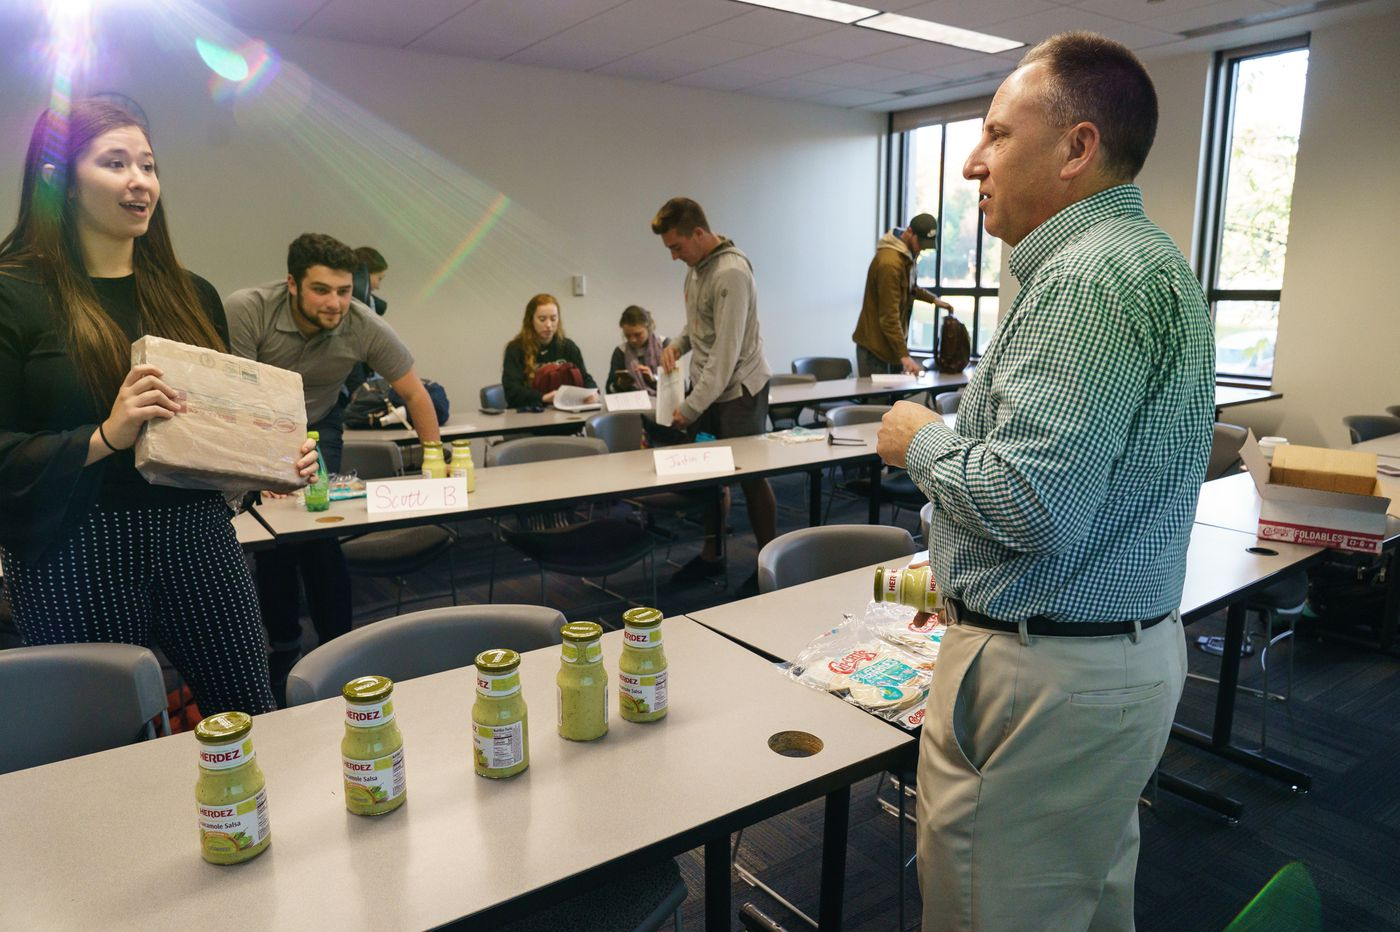 At St. Joe's, students learn the business of food